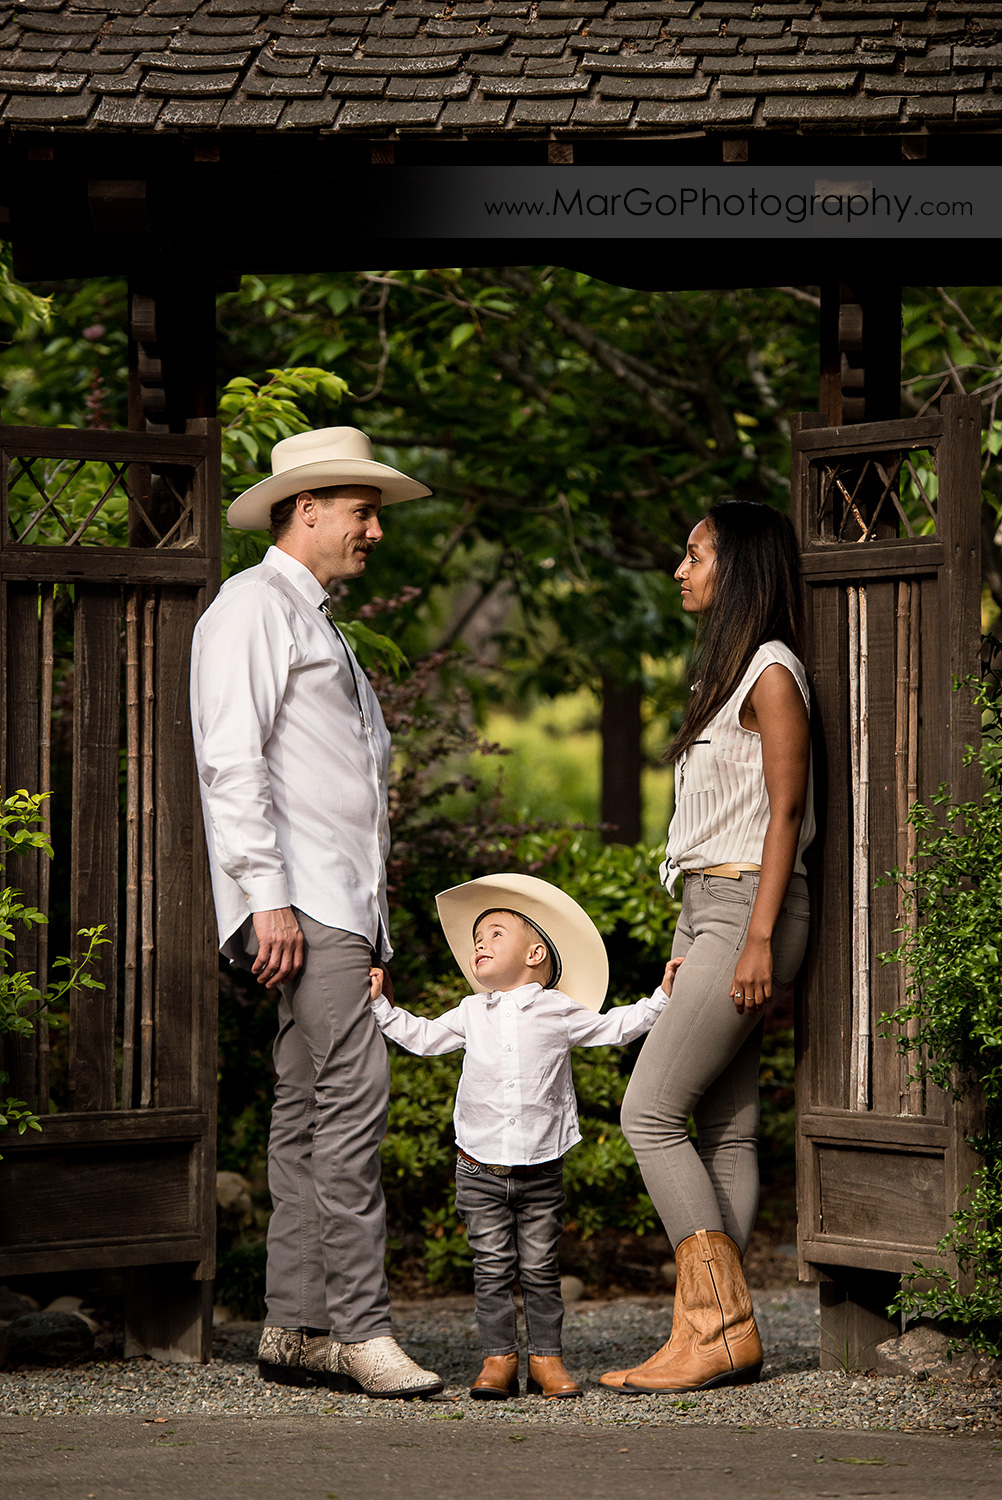 man and little boy in white shirts, gray jeans and cowboy hats and woman in white top standing in wooden gate in Shinn Historical Park and Arboretum in Fremont